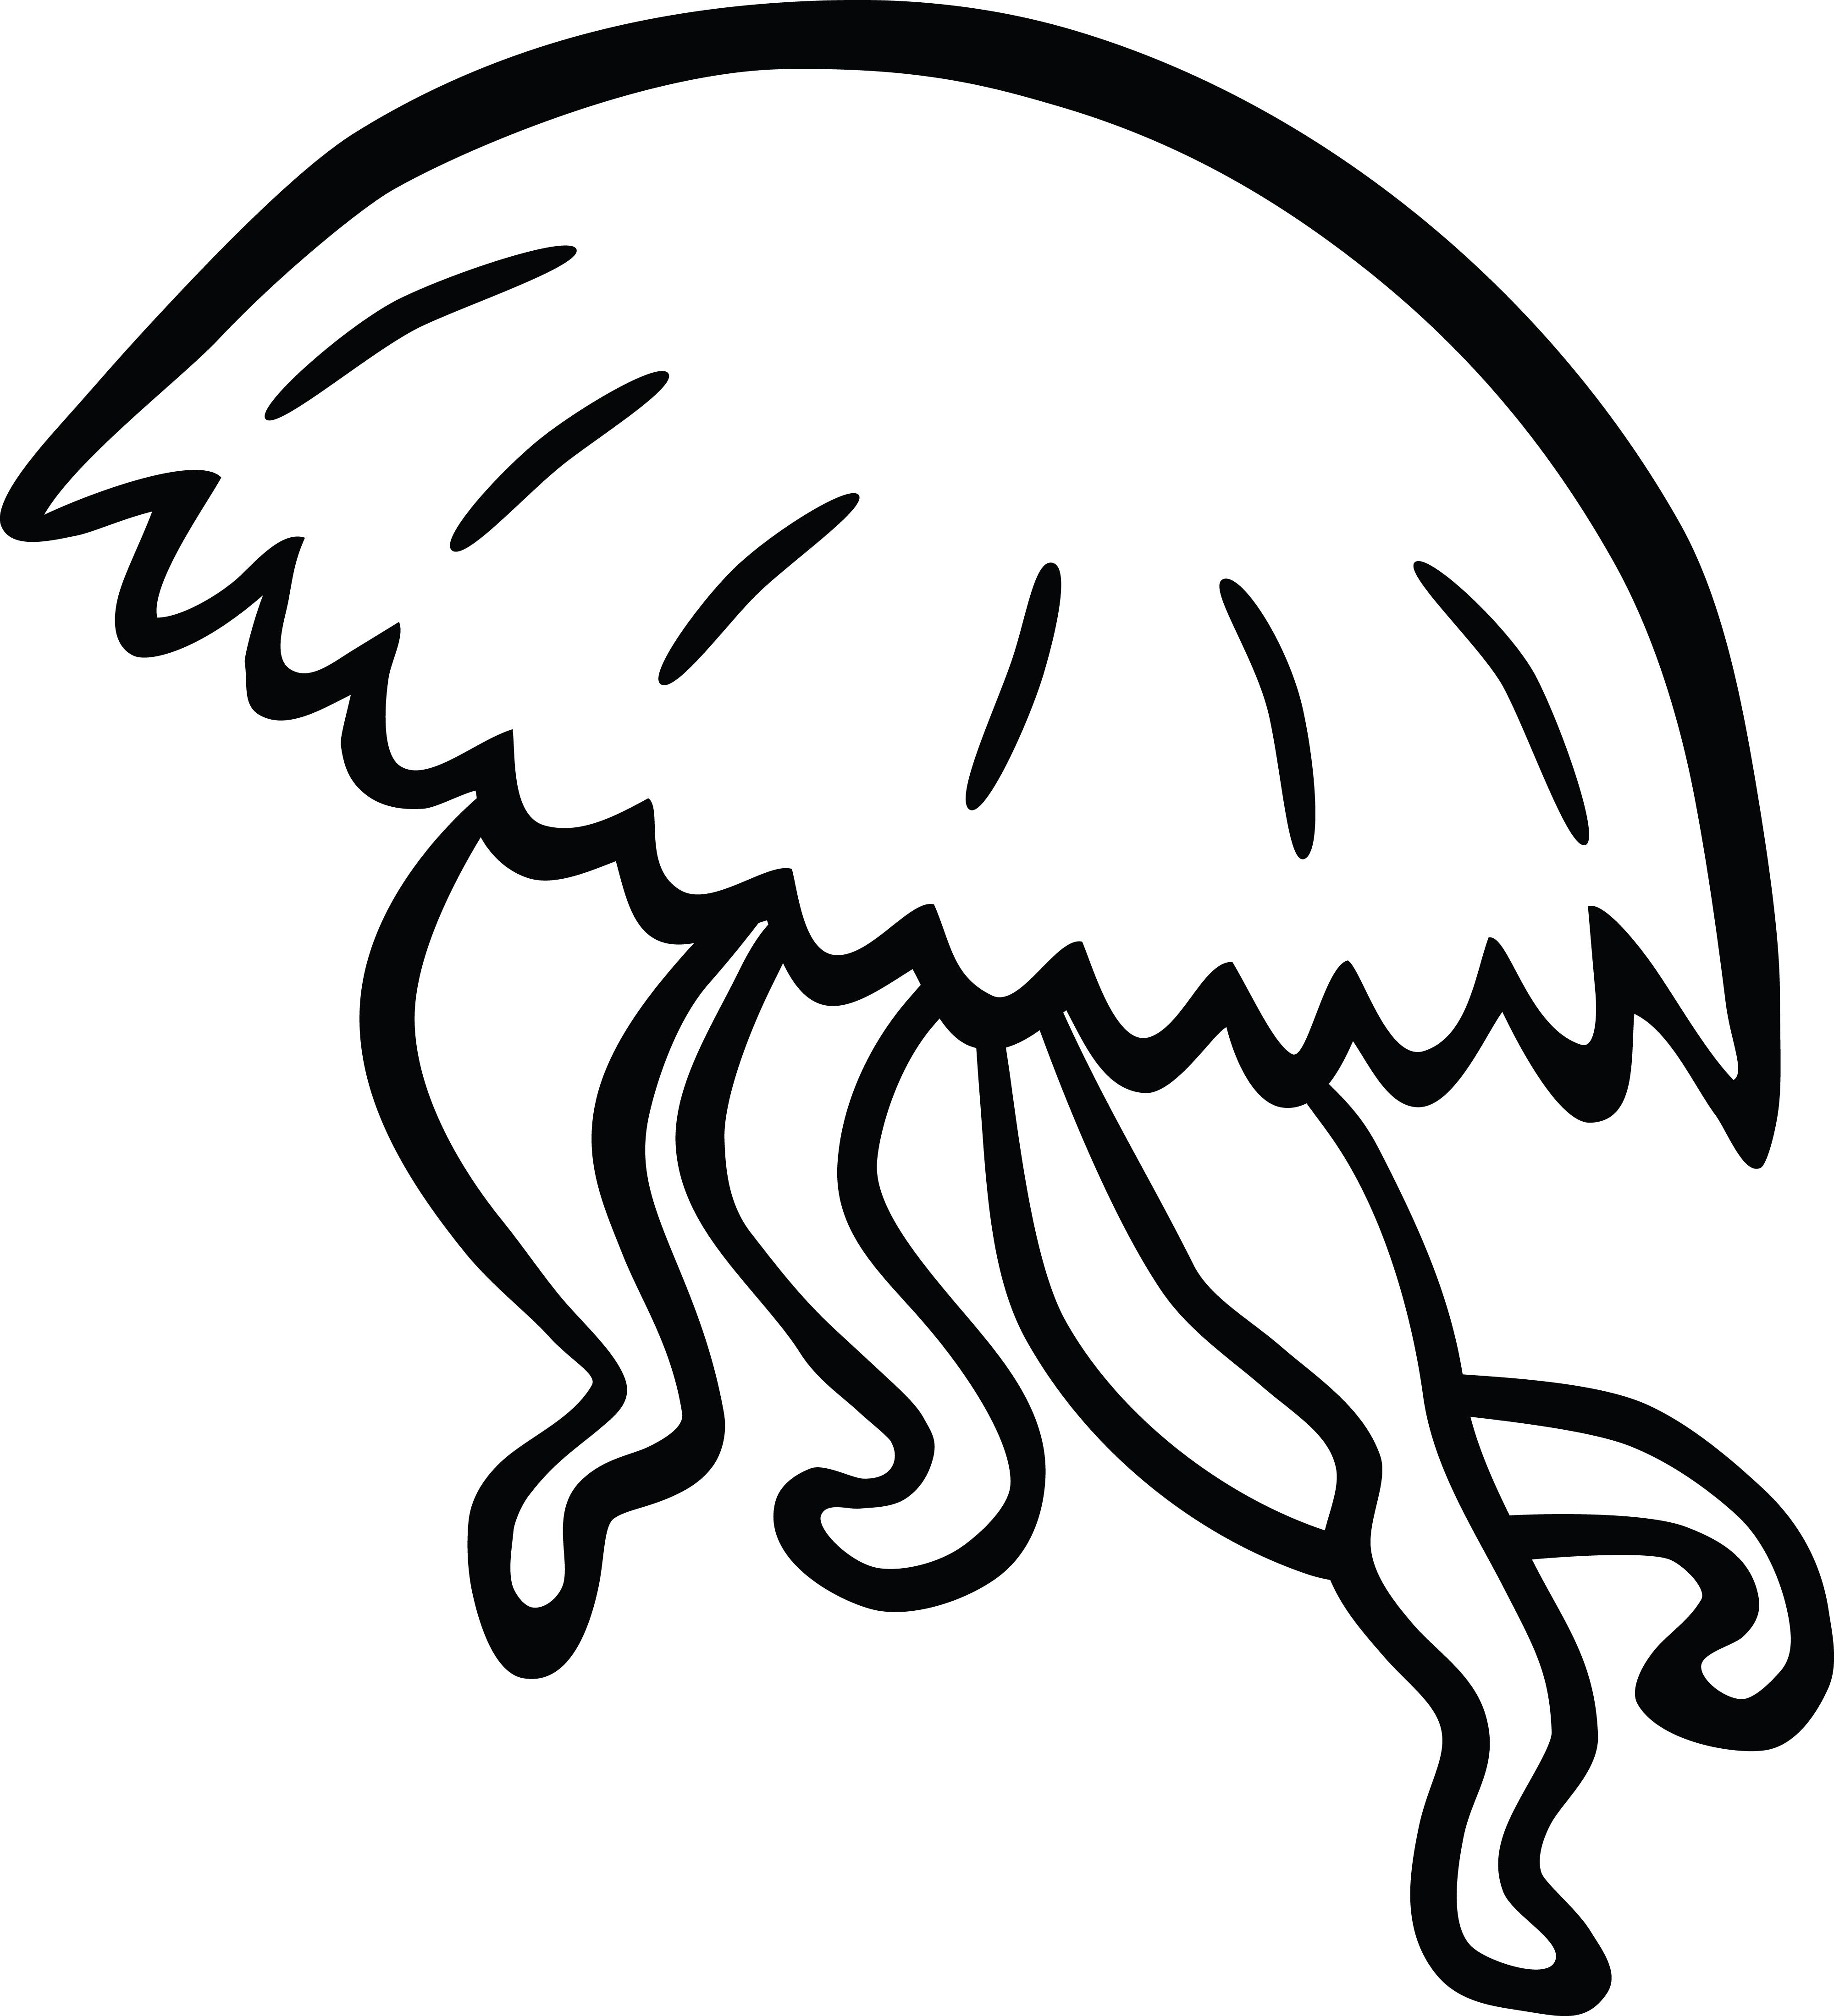 Free Clipart Of A black and white jellyfish - photo#4